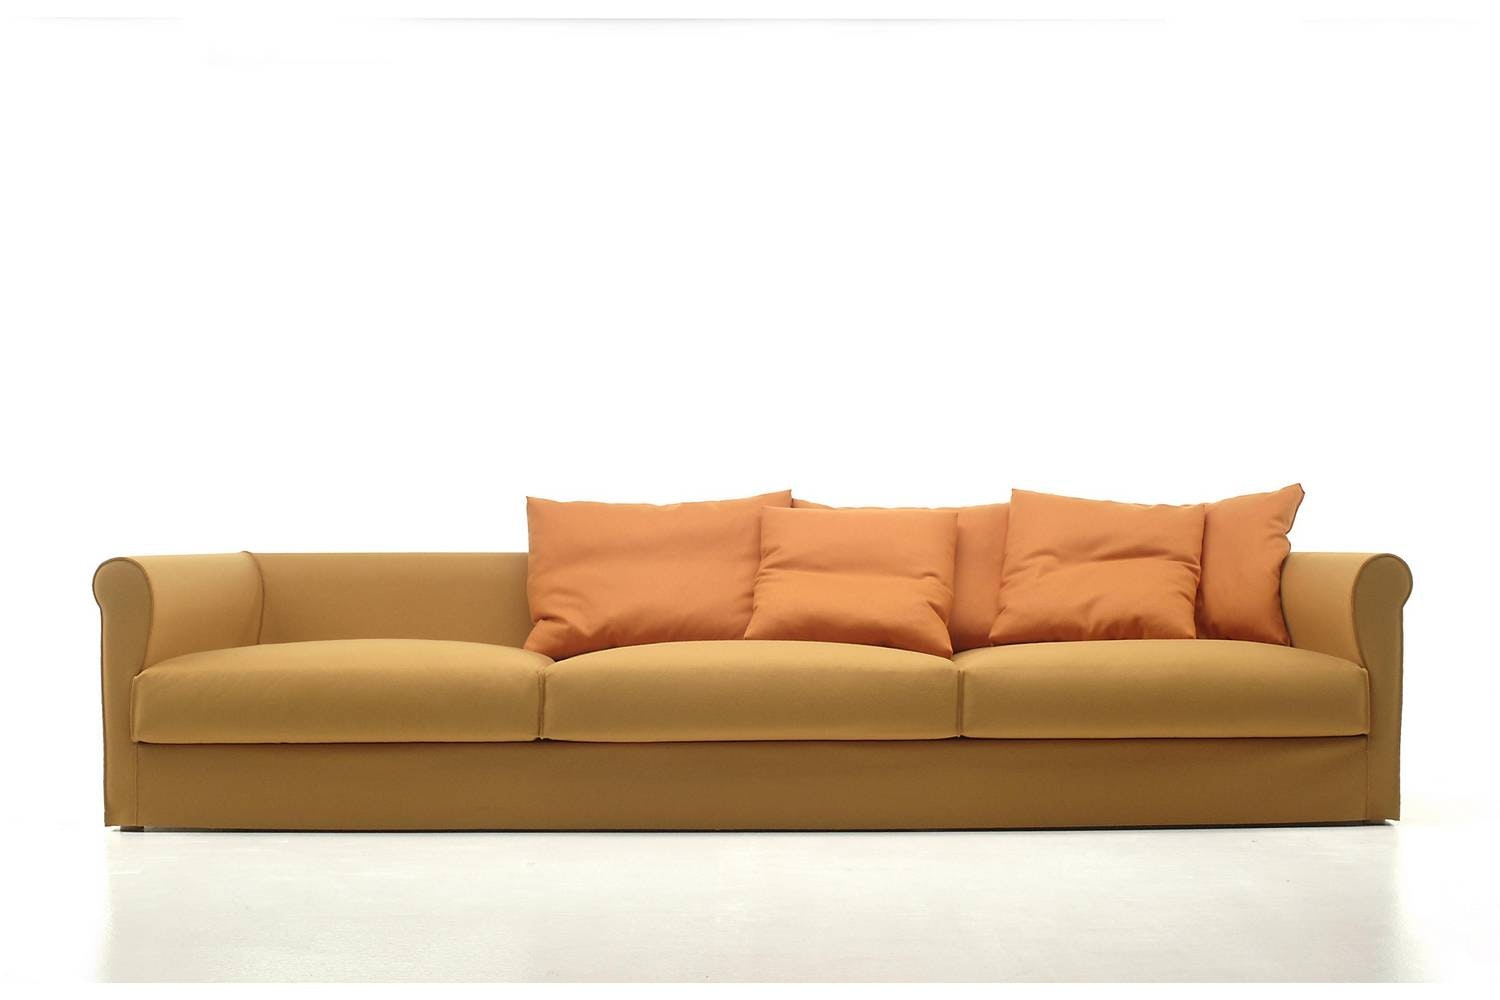 Dorian Sofa by Piero Lissoni for Living Divani